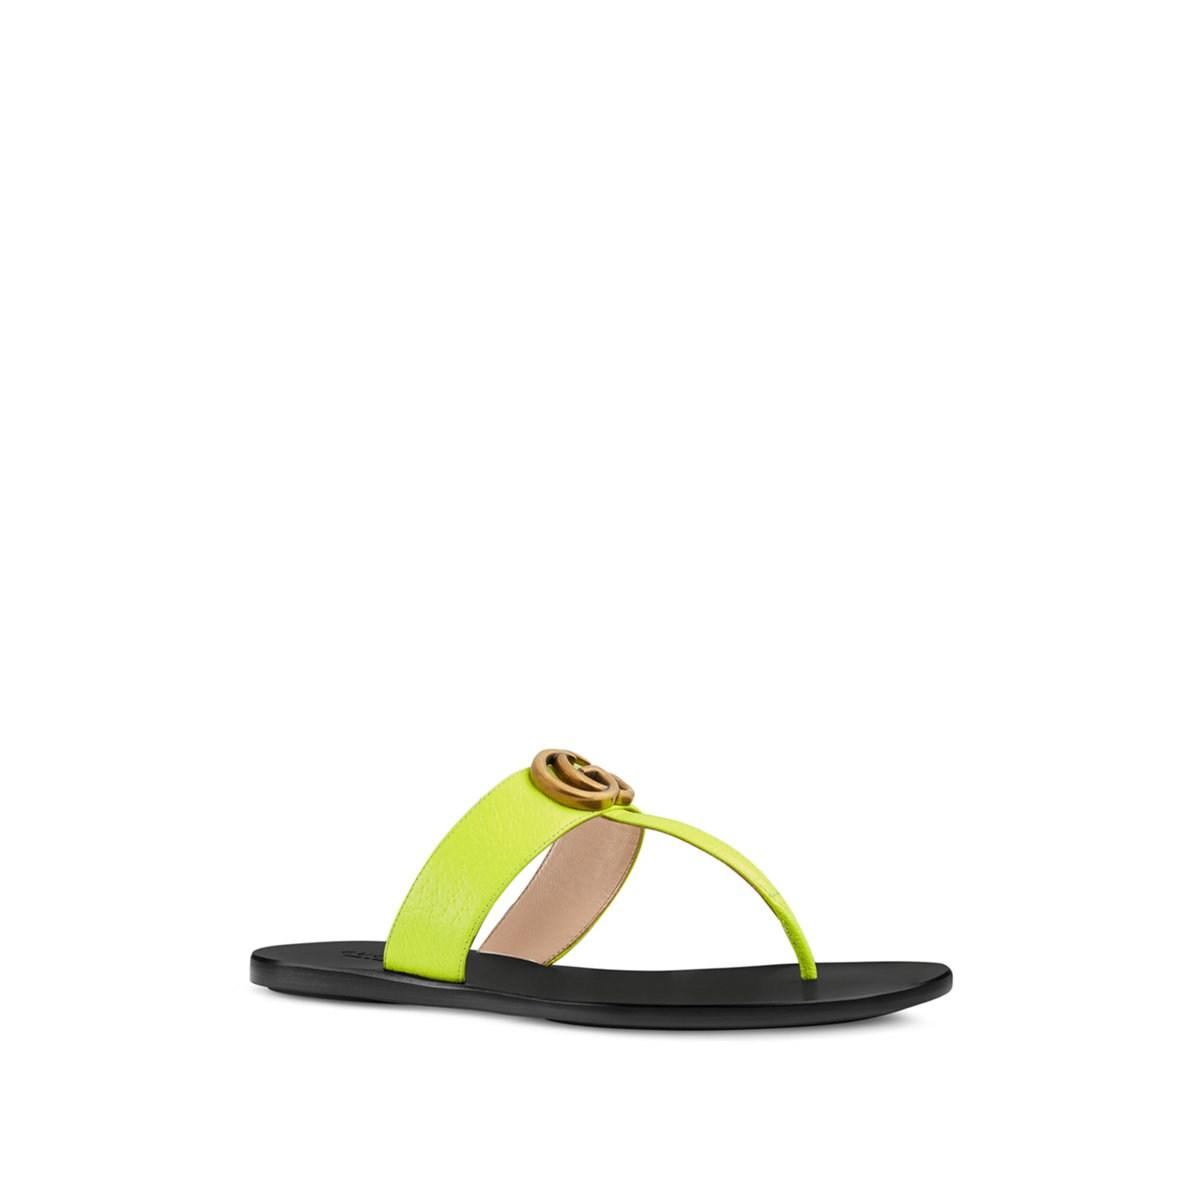 a35b586c0bd Lyst - Gucci Marmont Leather Thong Sandals in Green